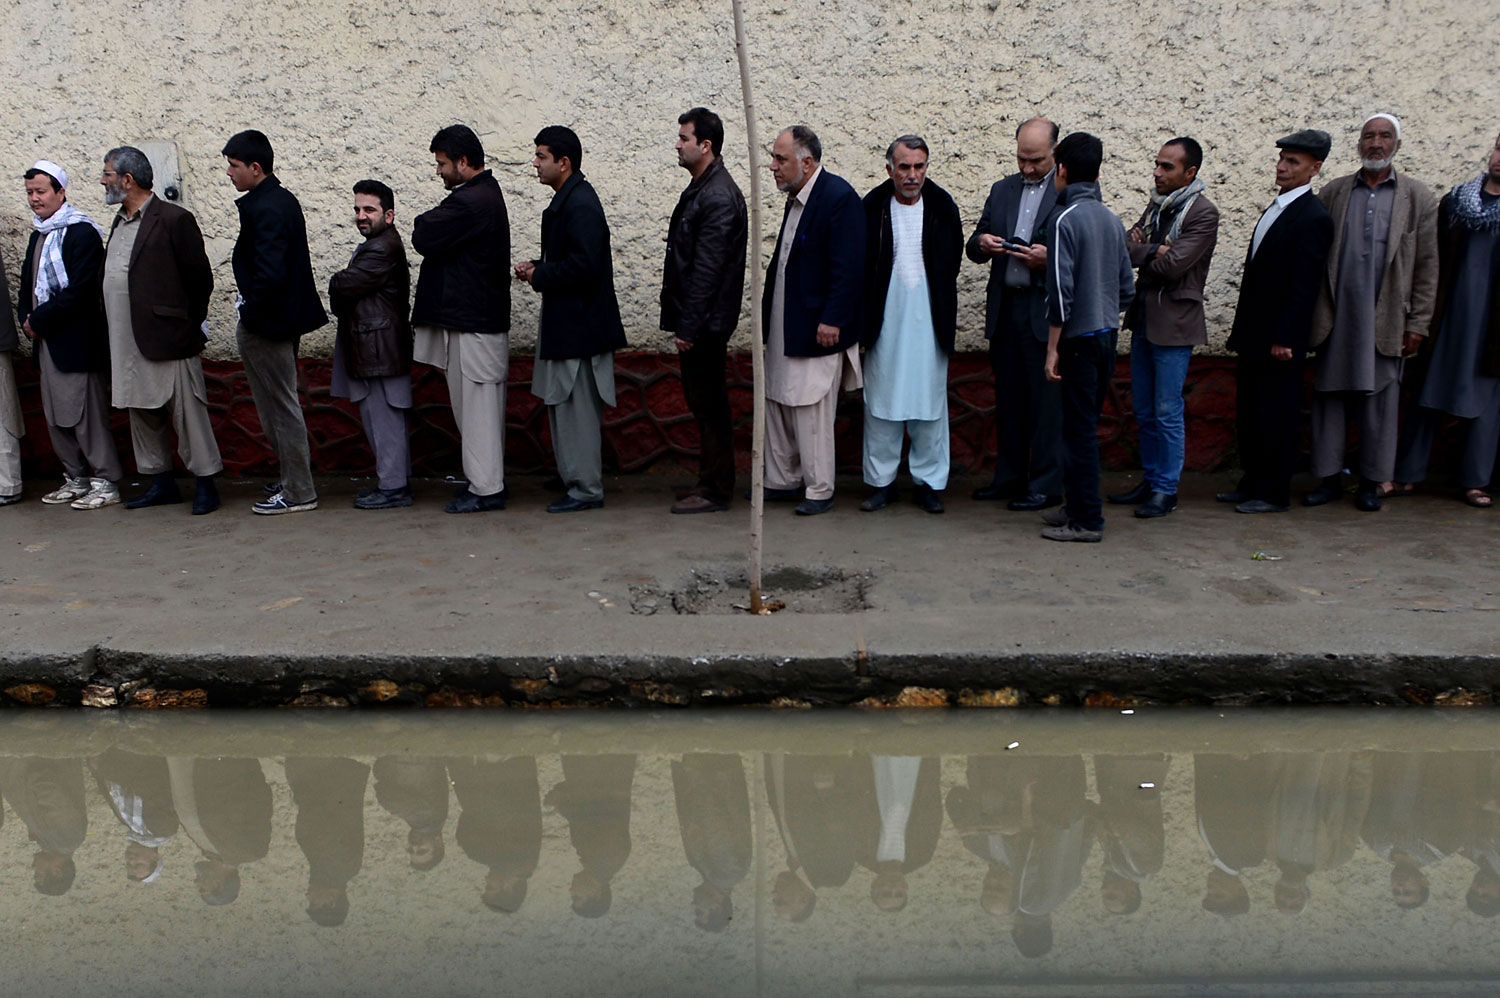 Afghan residents wishing to vote line up outside a local polling station in Kabul.